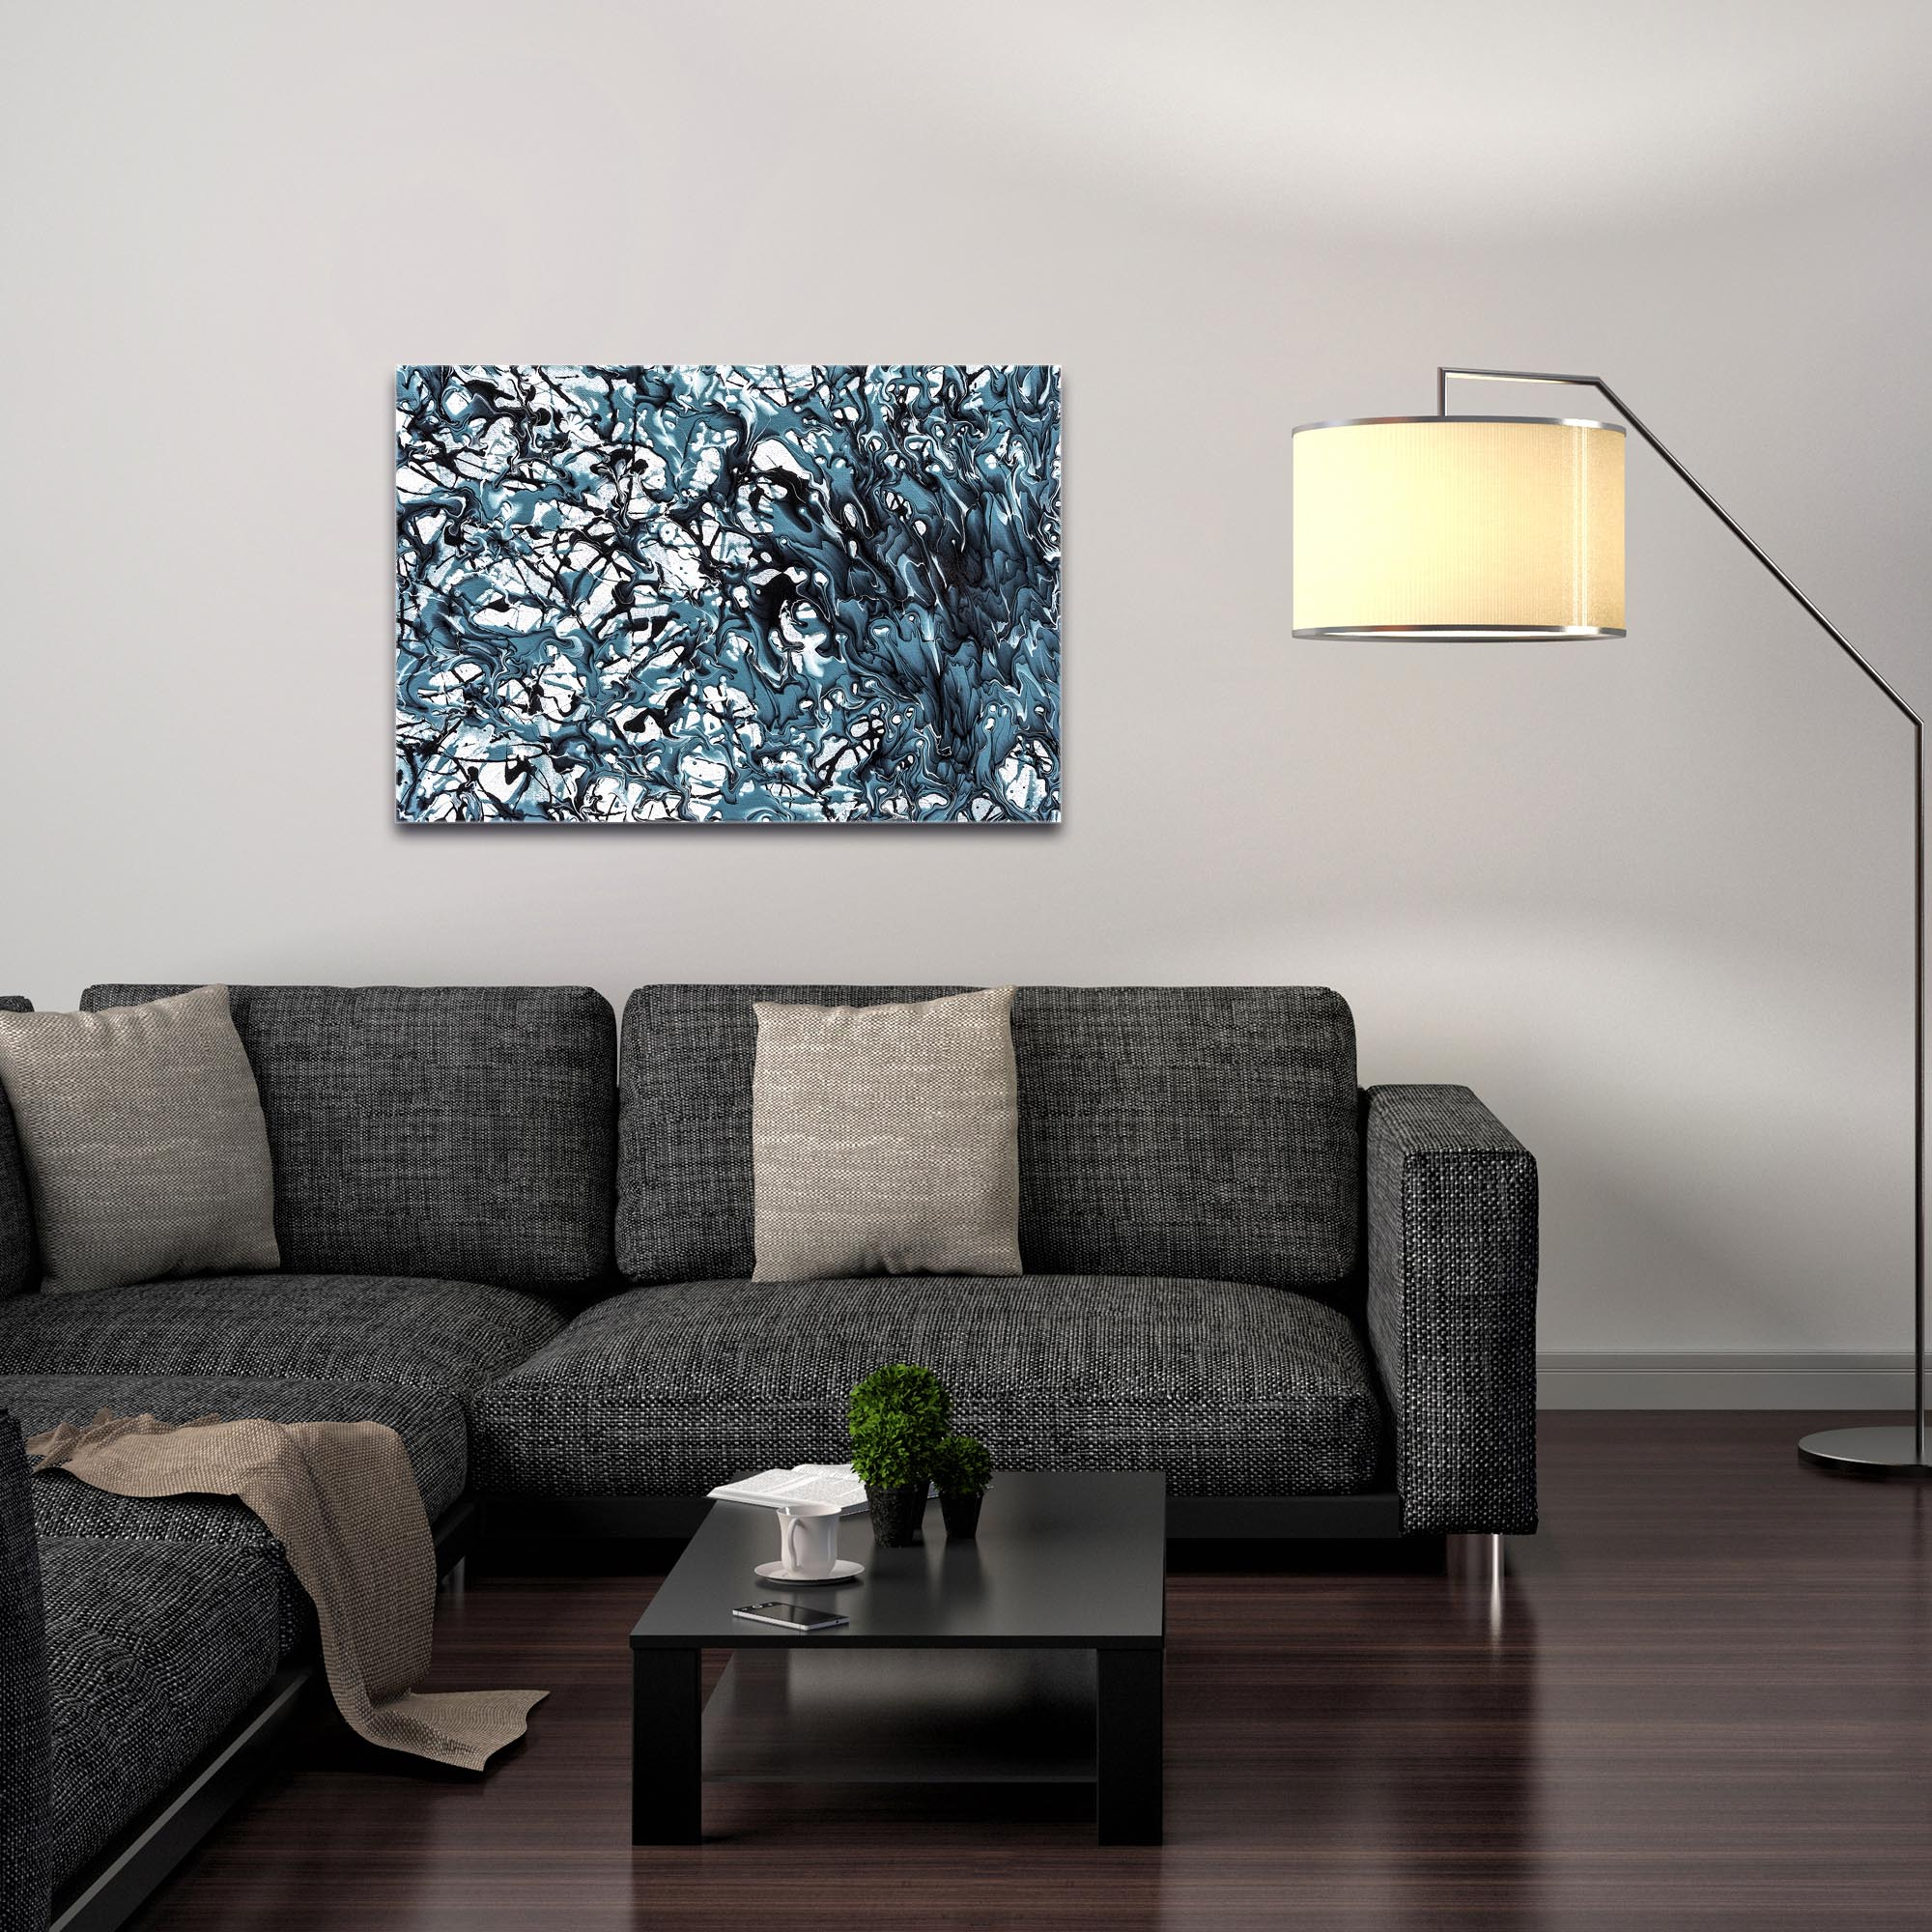 Abstract Wall Art 'Days of Grey 5' - Colorful Urban Decor on Metal or Plexiglass - Image 3